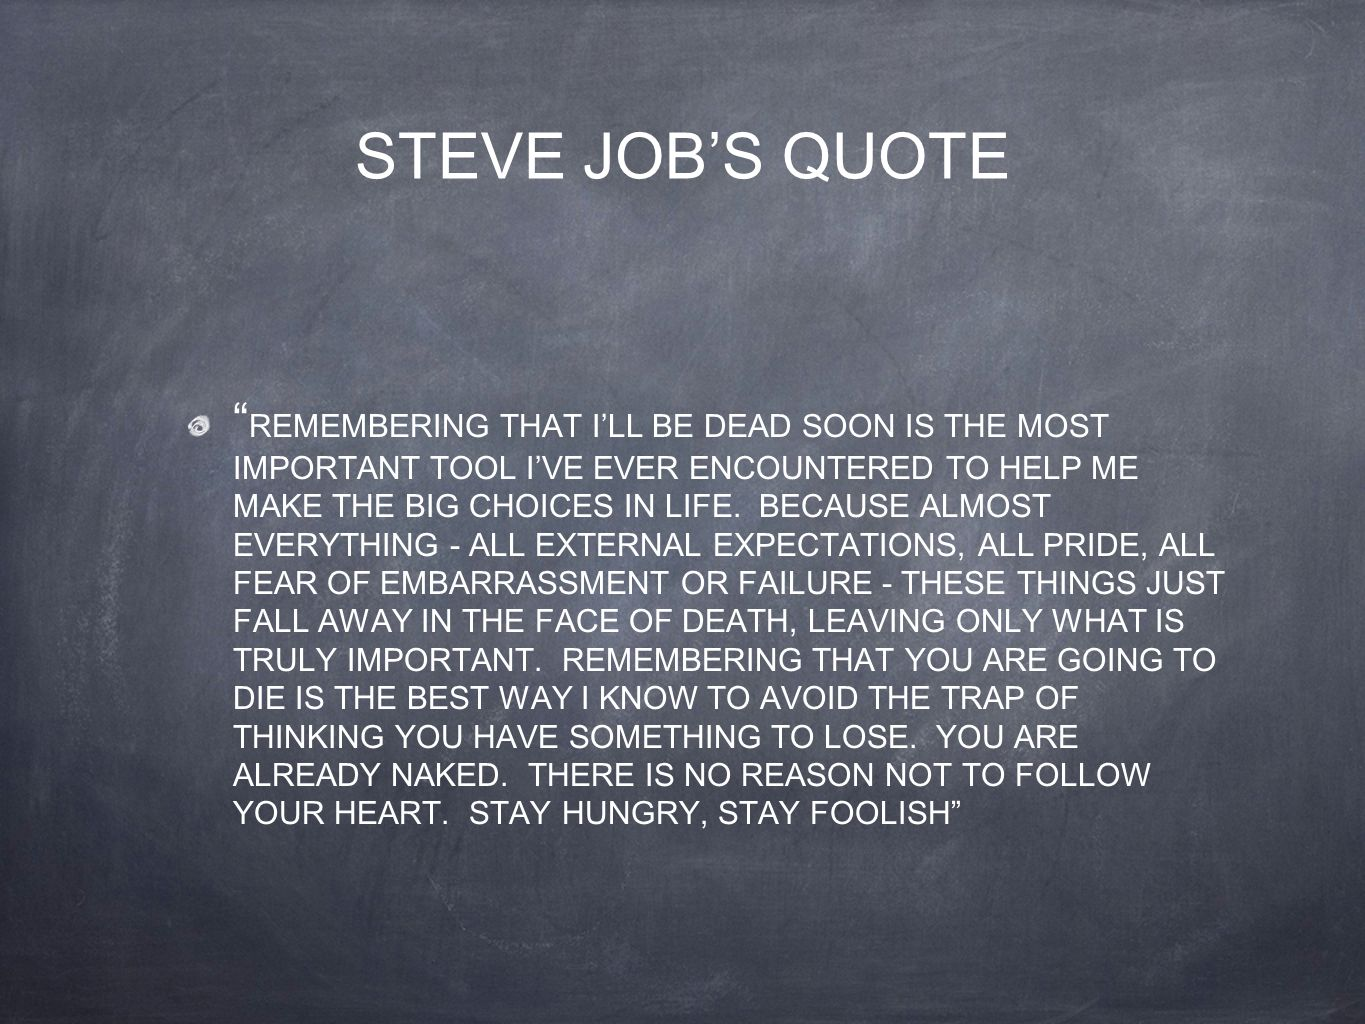 "STEVE JOB'S QUOTE "" REMEMBERING THAT I'LL BE DEAD SOON IS THE MOST IMPORTANT TOOL I'VE EVER ENCOUNTERED TO HELP ME MAKE THE BIG CHOICES IN LIFE. BECAU"